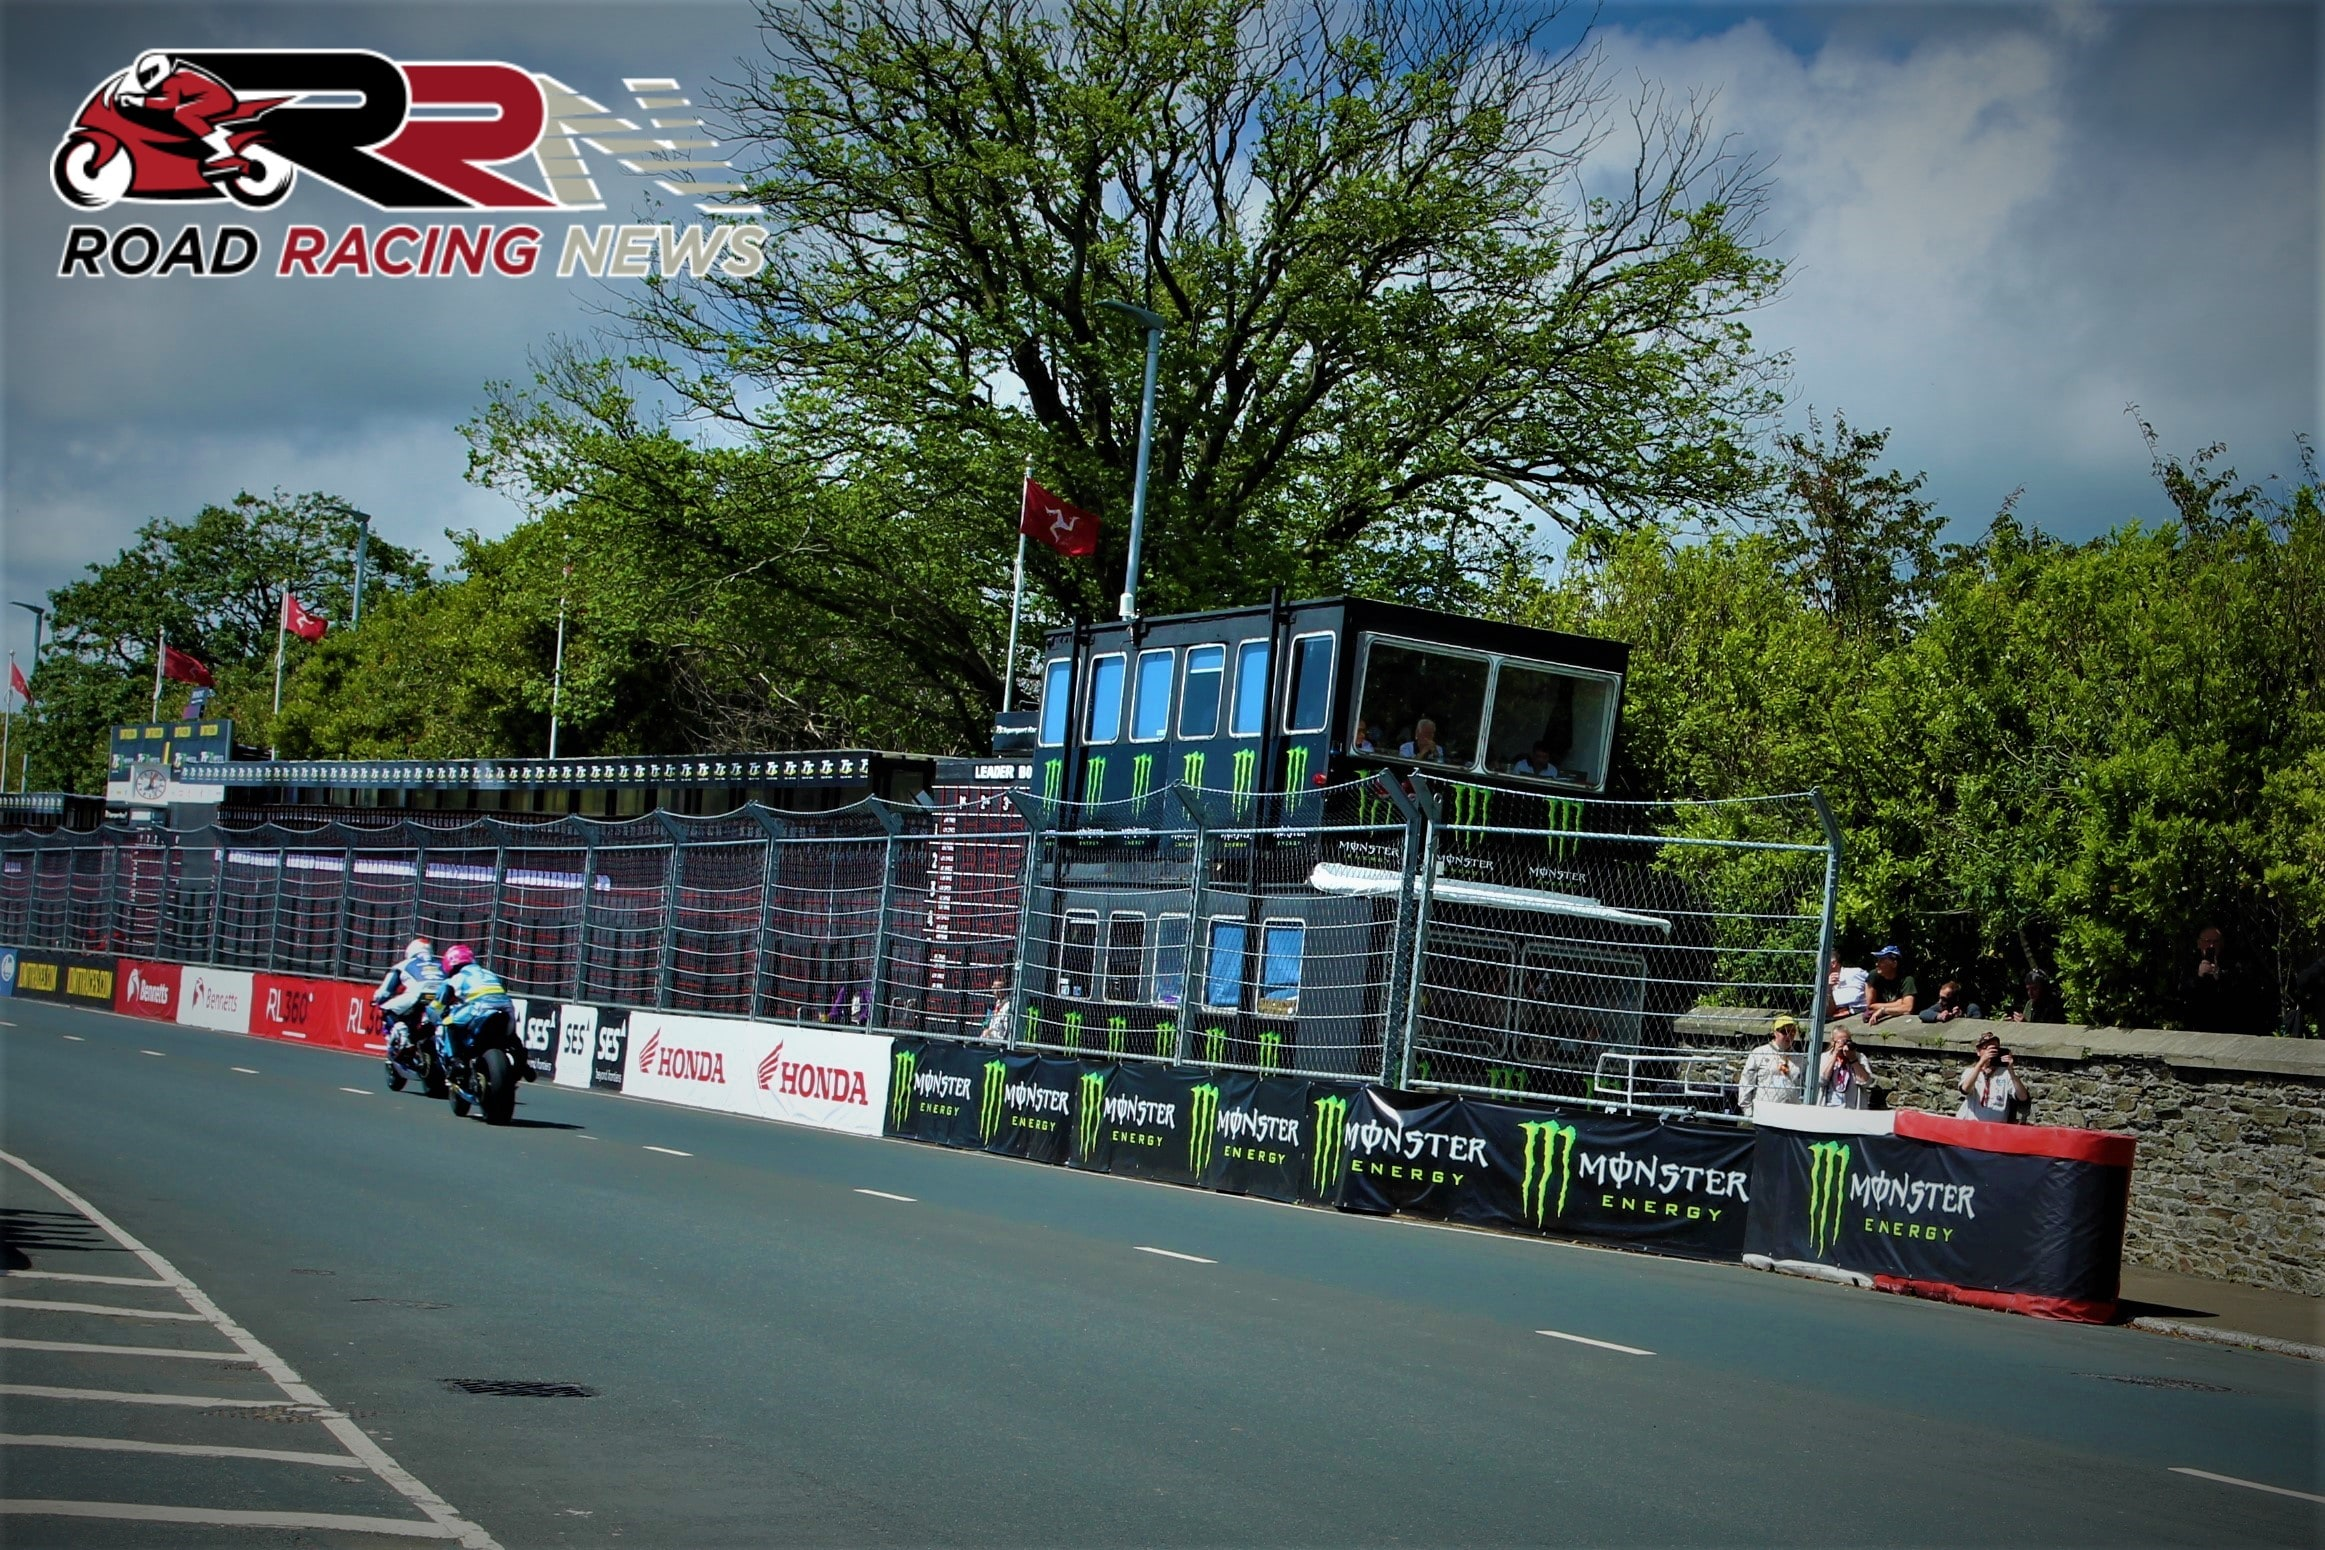 TT 2019: Reflection On A Challenging Two Weeks